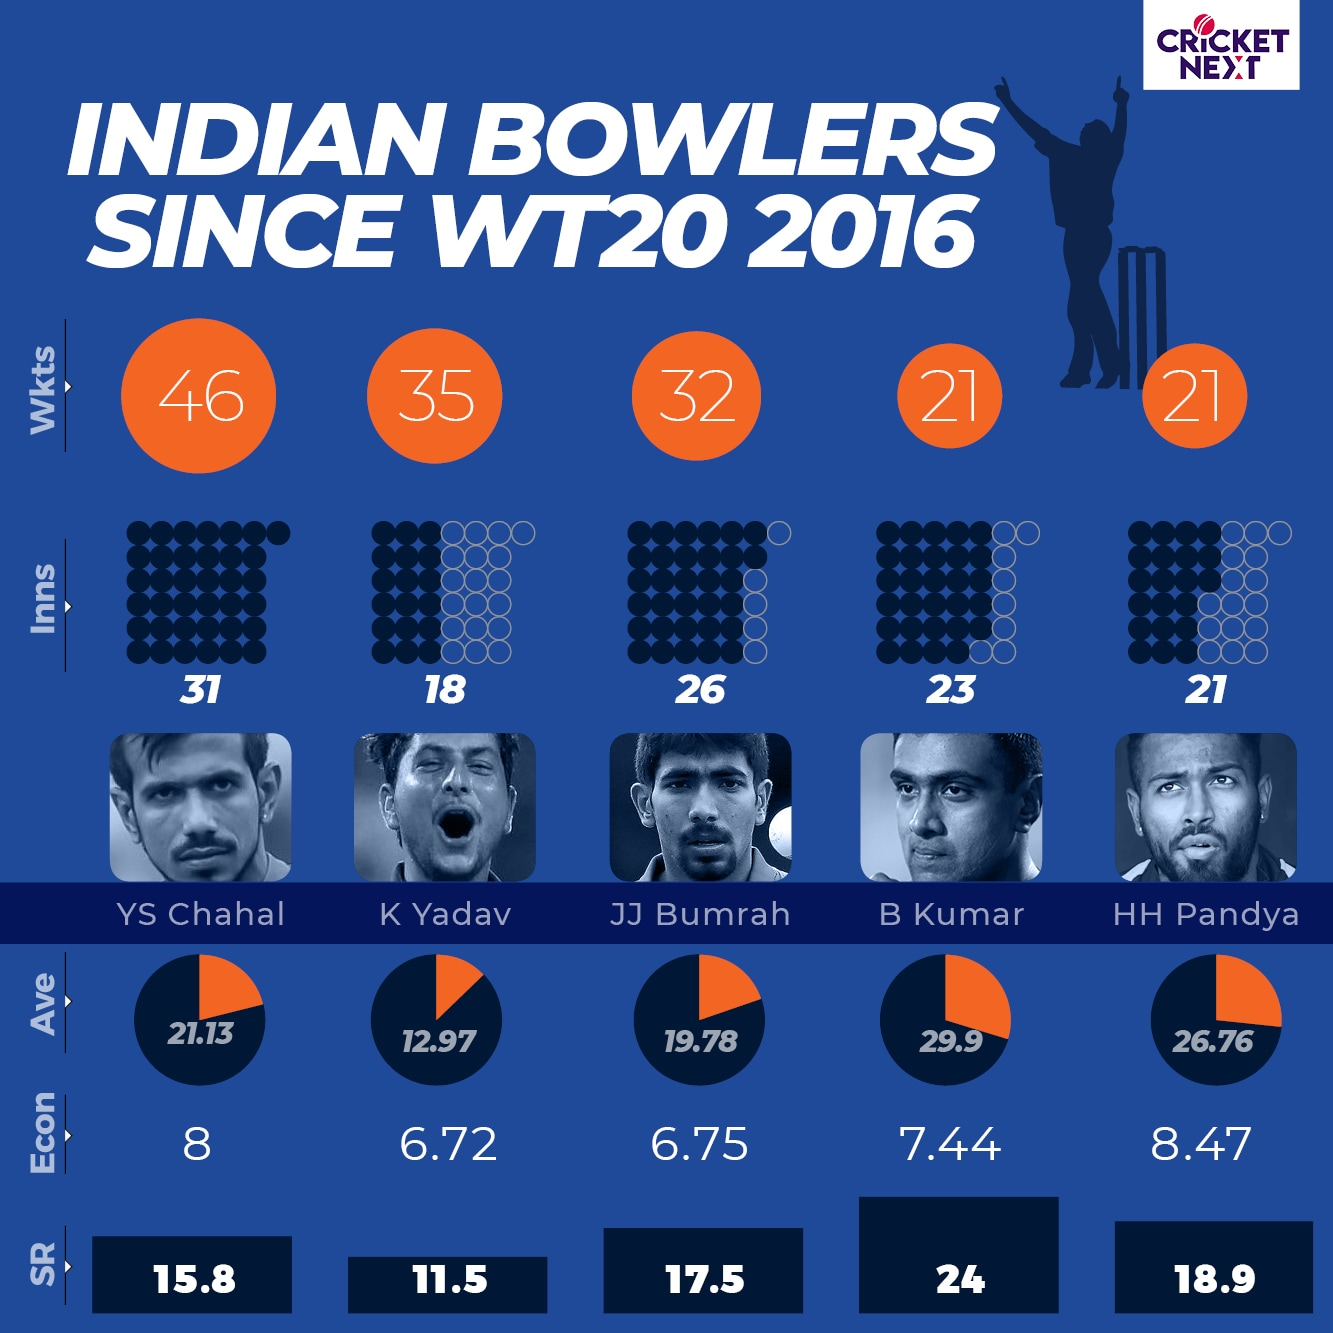 INDIA IN T20 CRICKET4